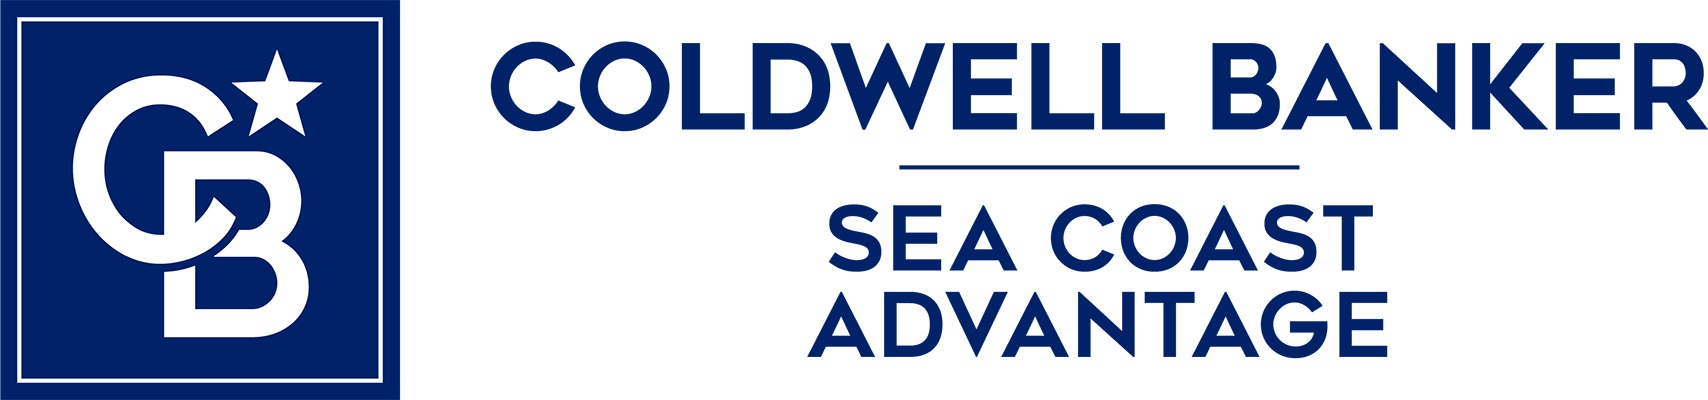 Laura Mathis - Coldwell Banker Sea Coast Advantage Realty Logo